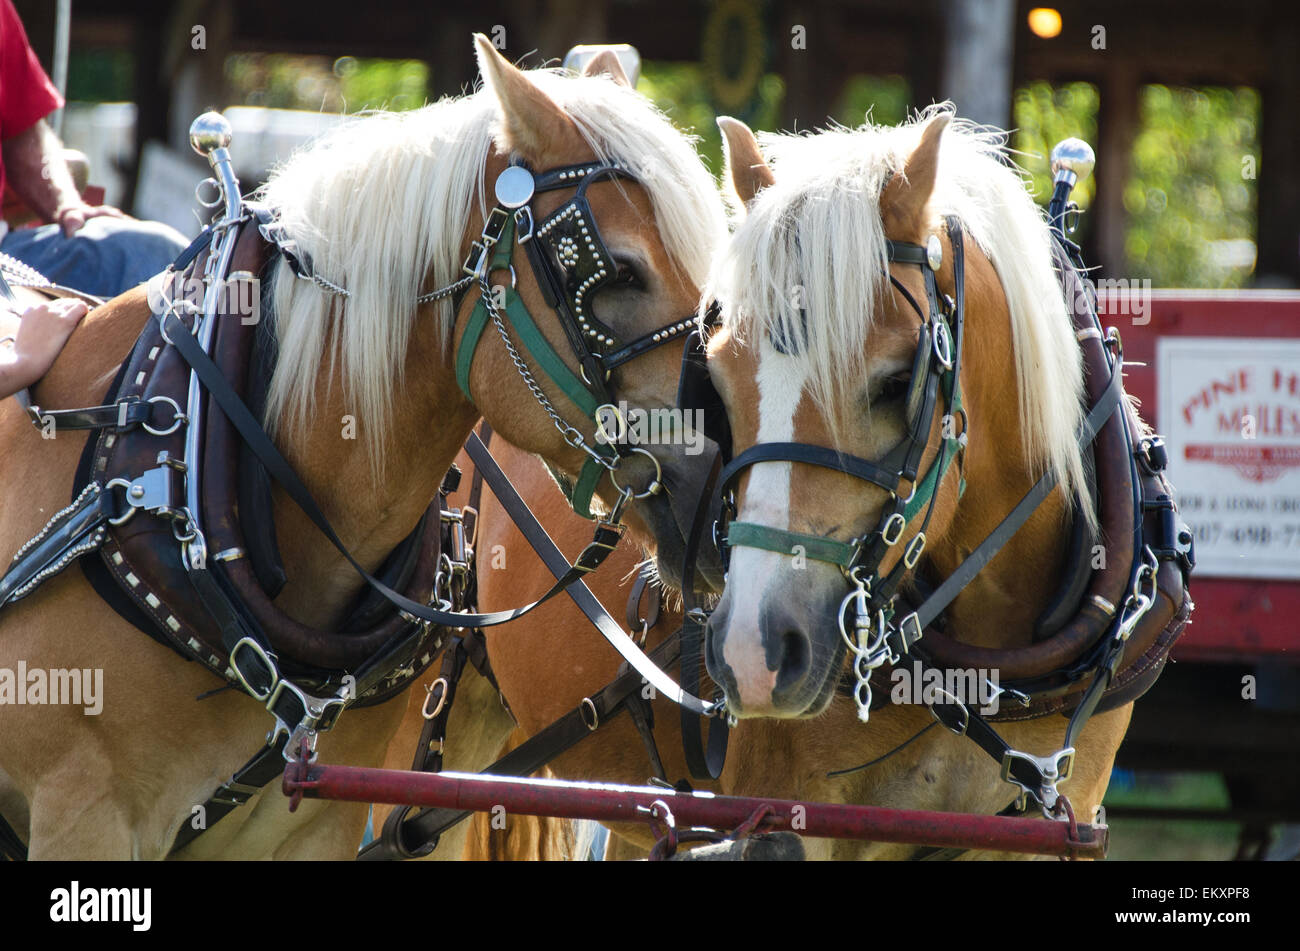 Two Haflinger horses pulling a wagon ride nuzzle each other at the